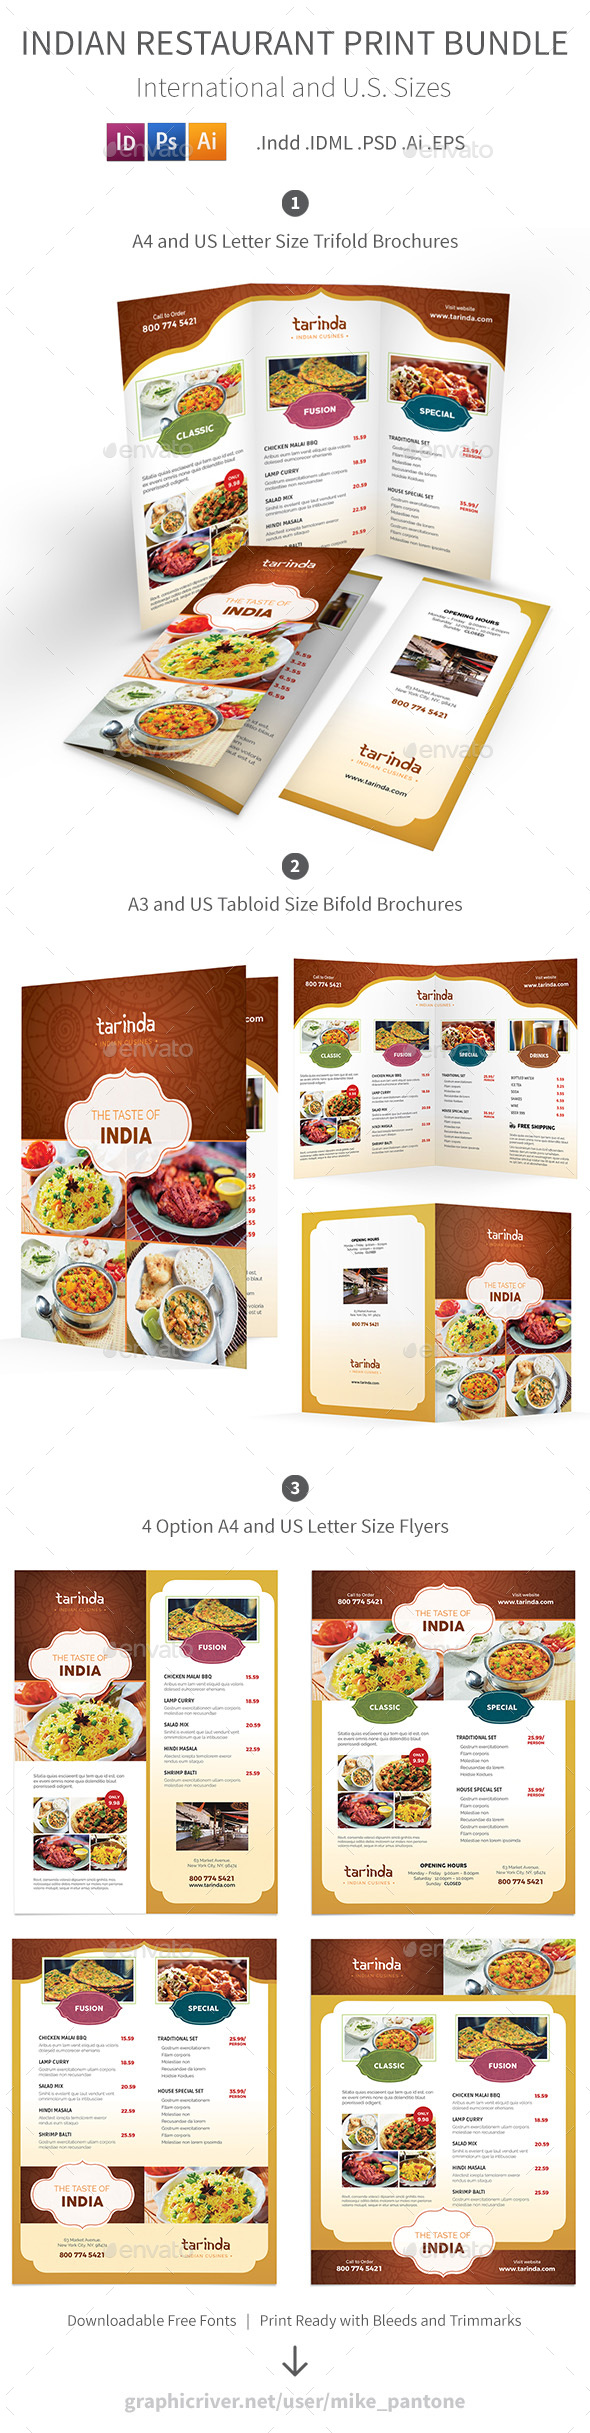 Indian Restaurant Menu Print Bundle